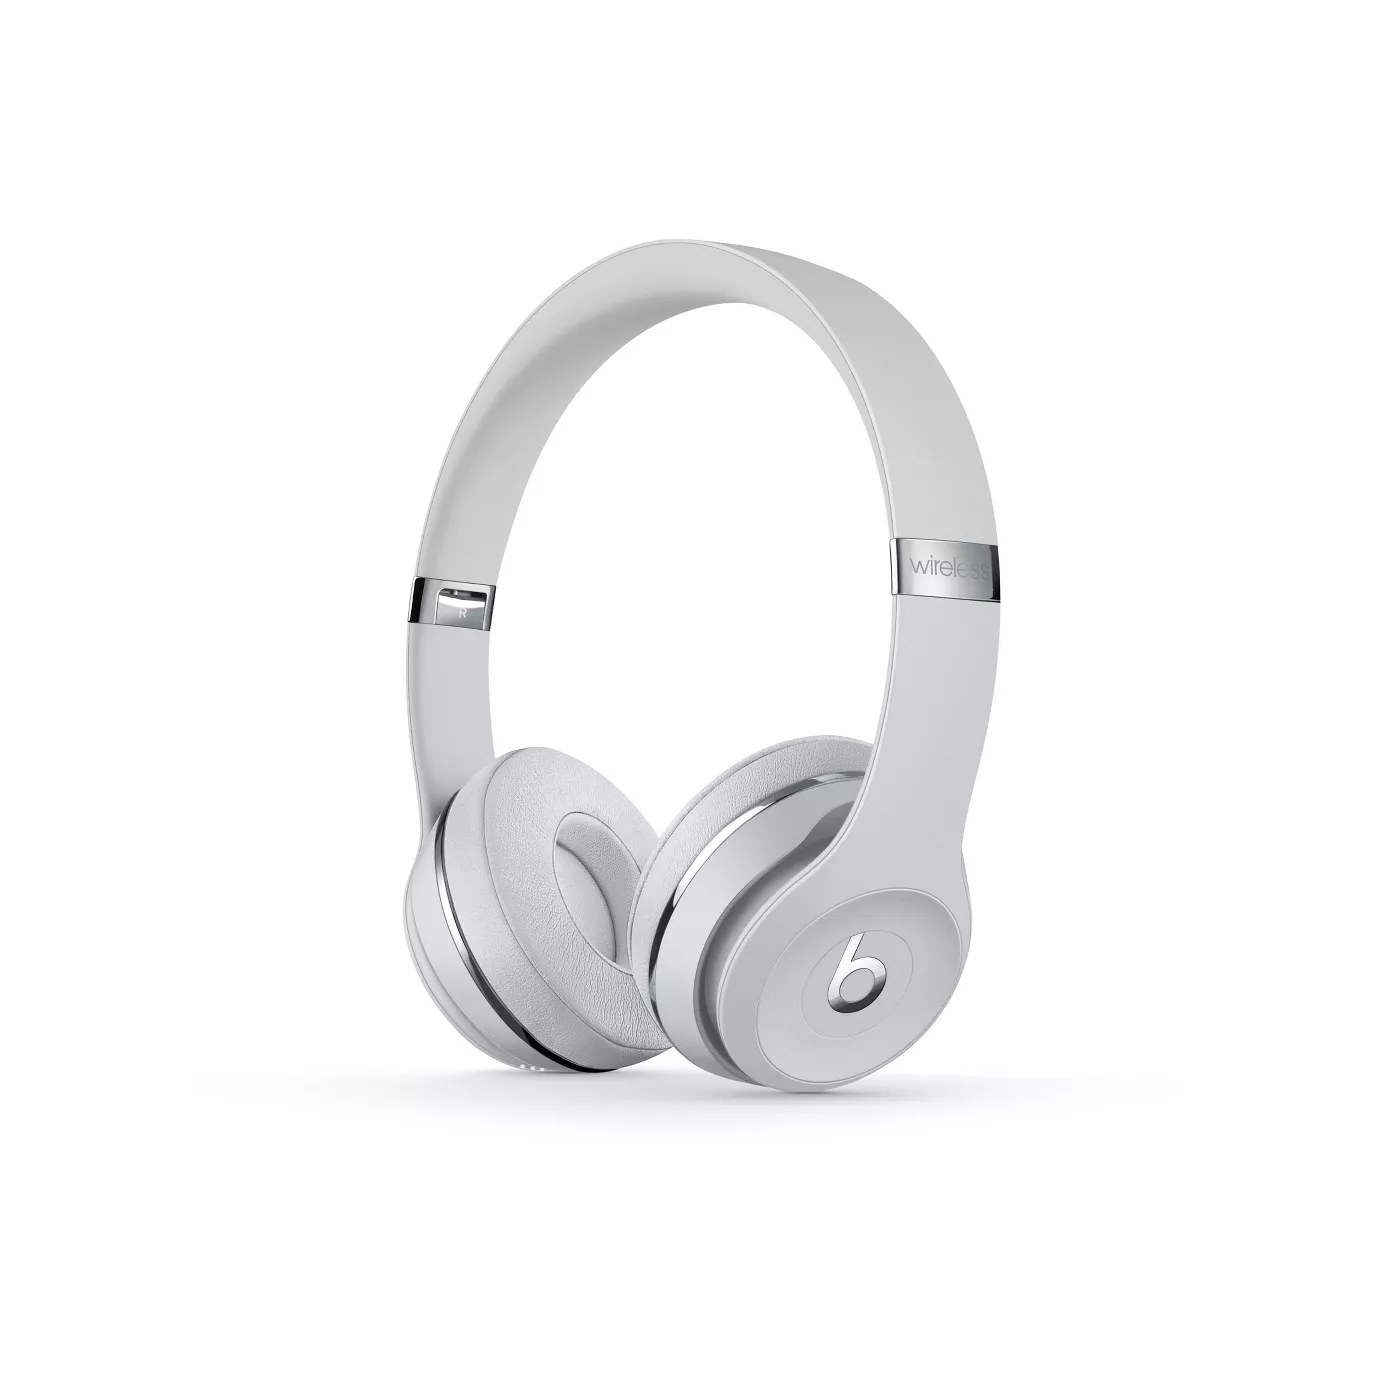 The headphones in satin silver